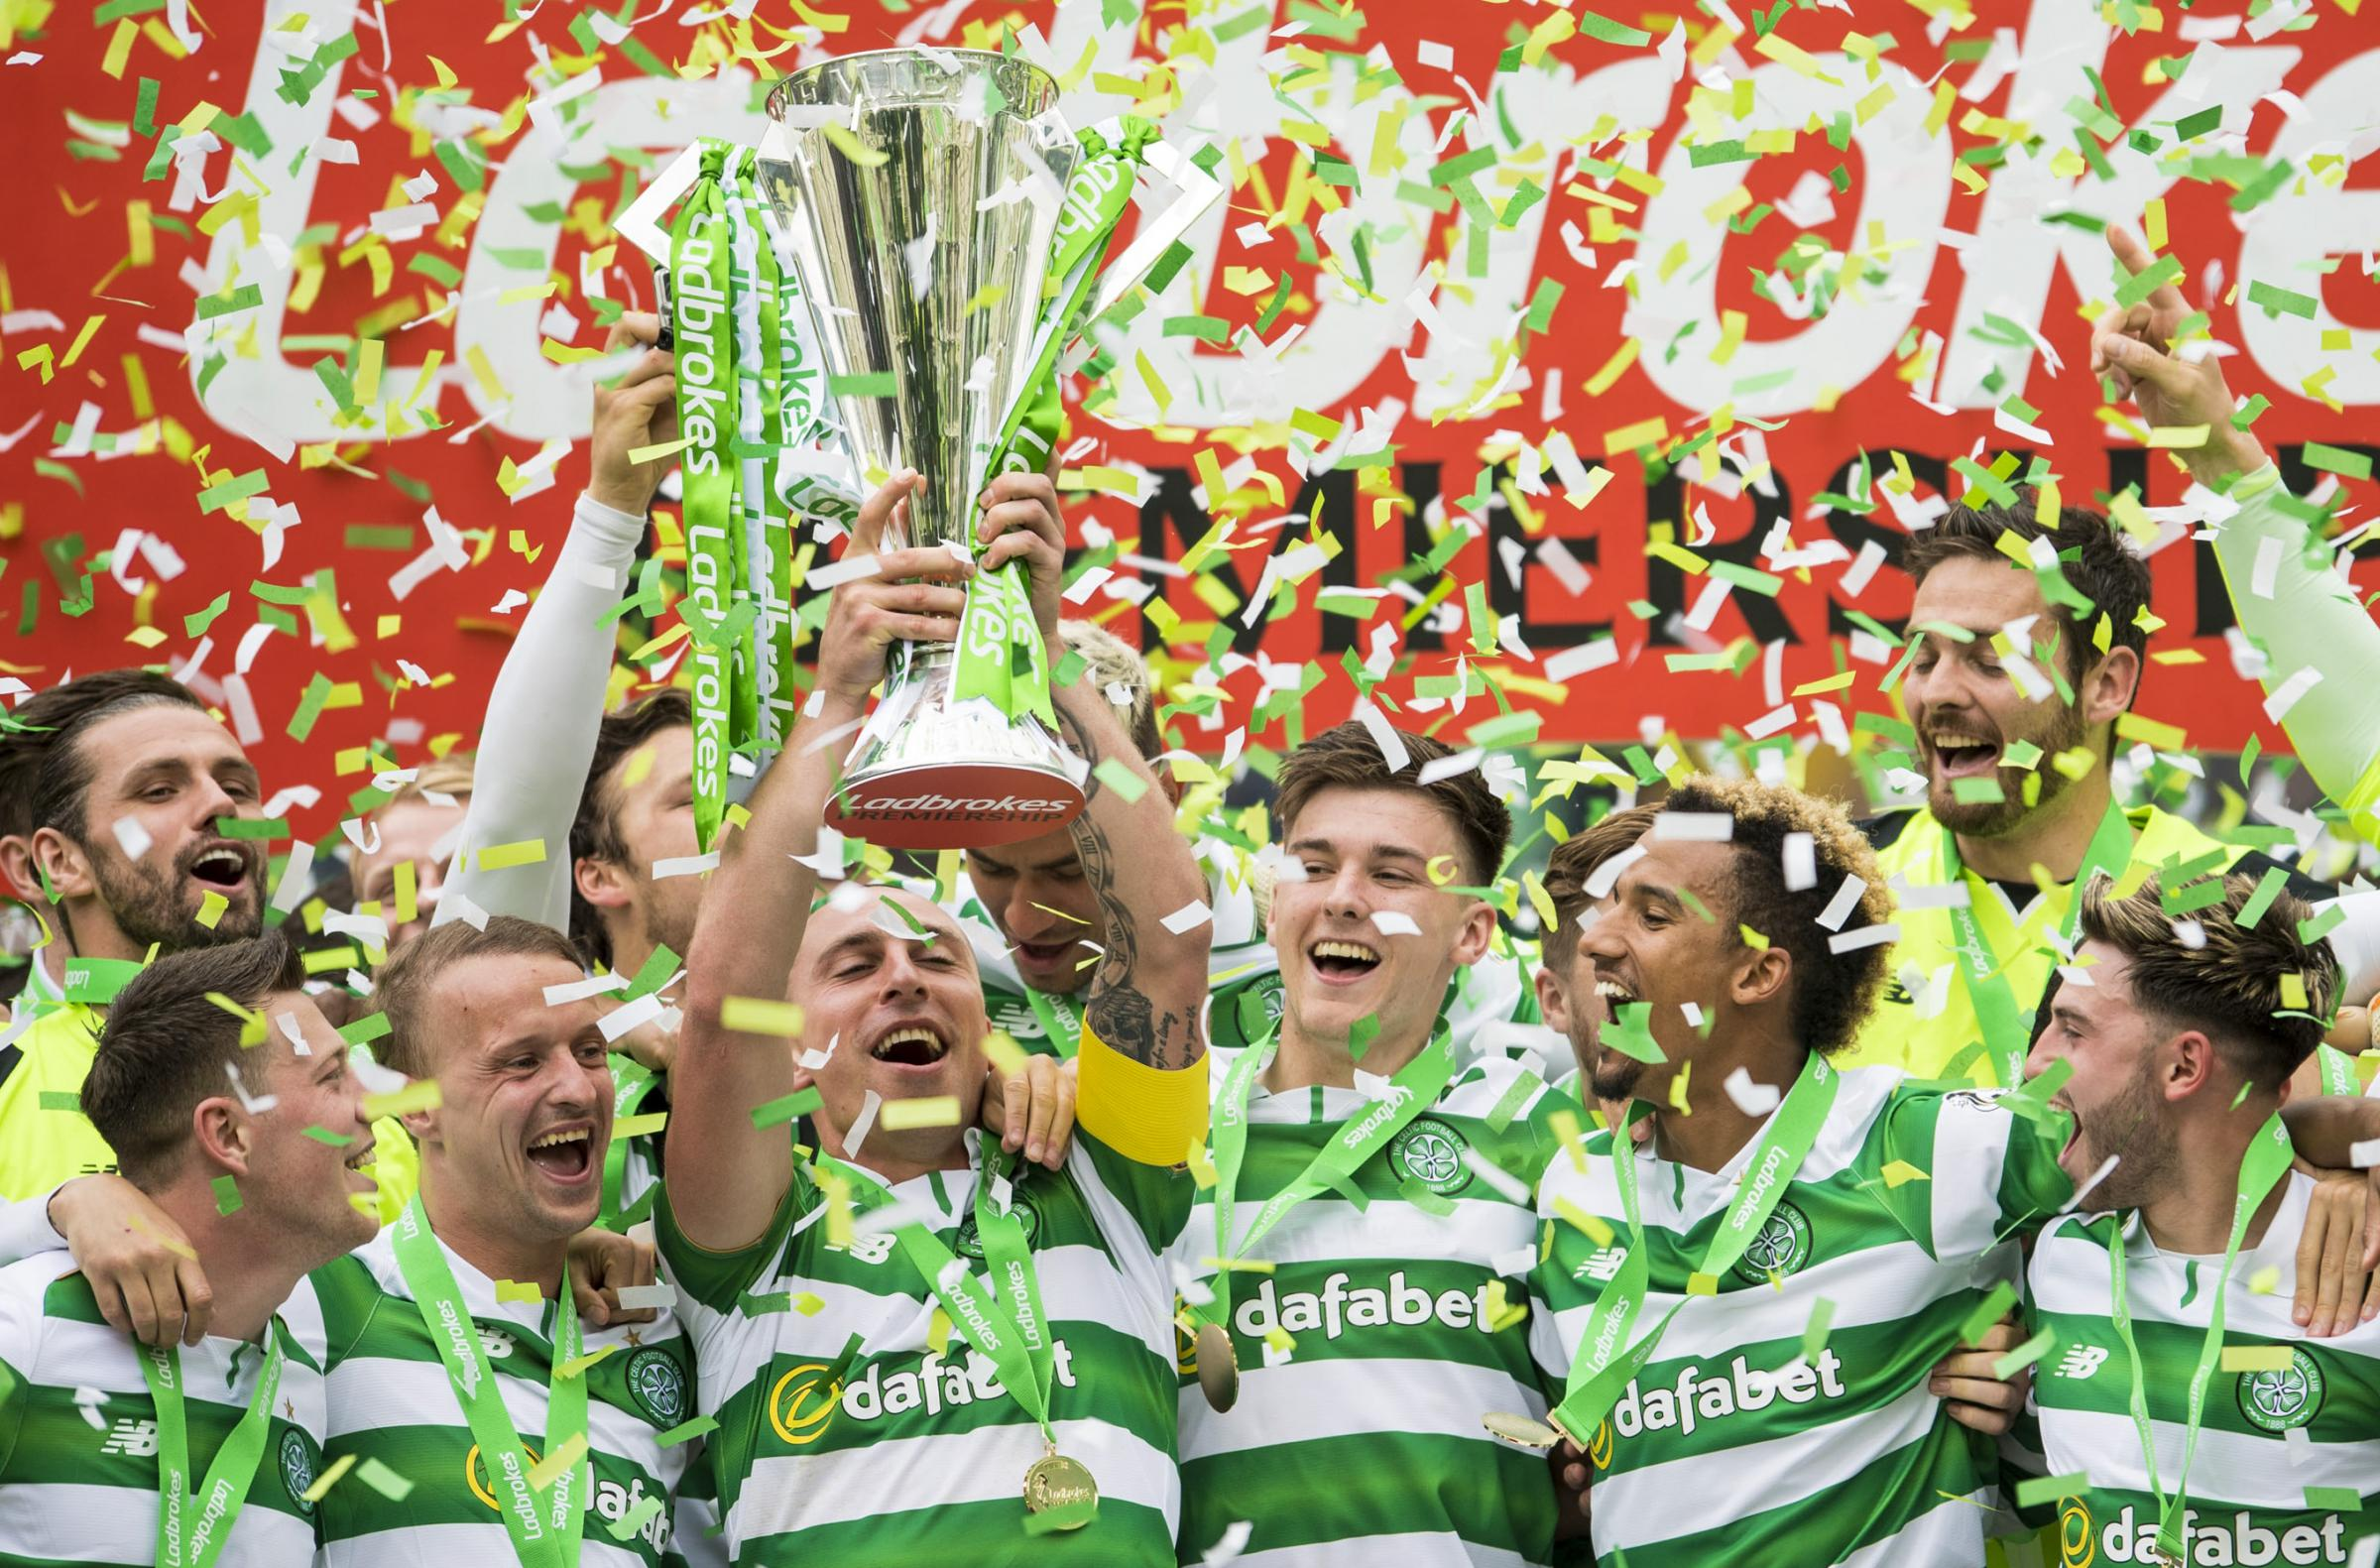 Celtic stars past and present take to Twitter to celebrate historic Invincibles season